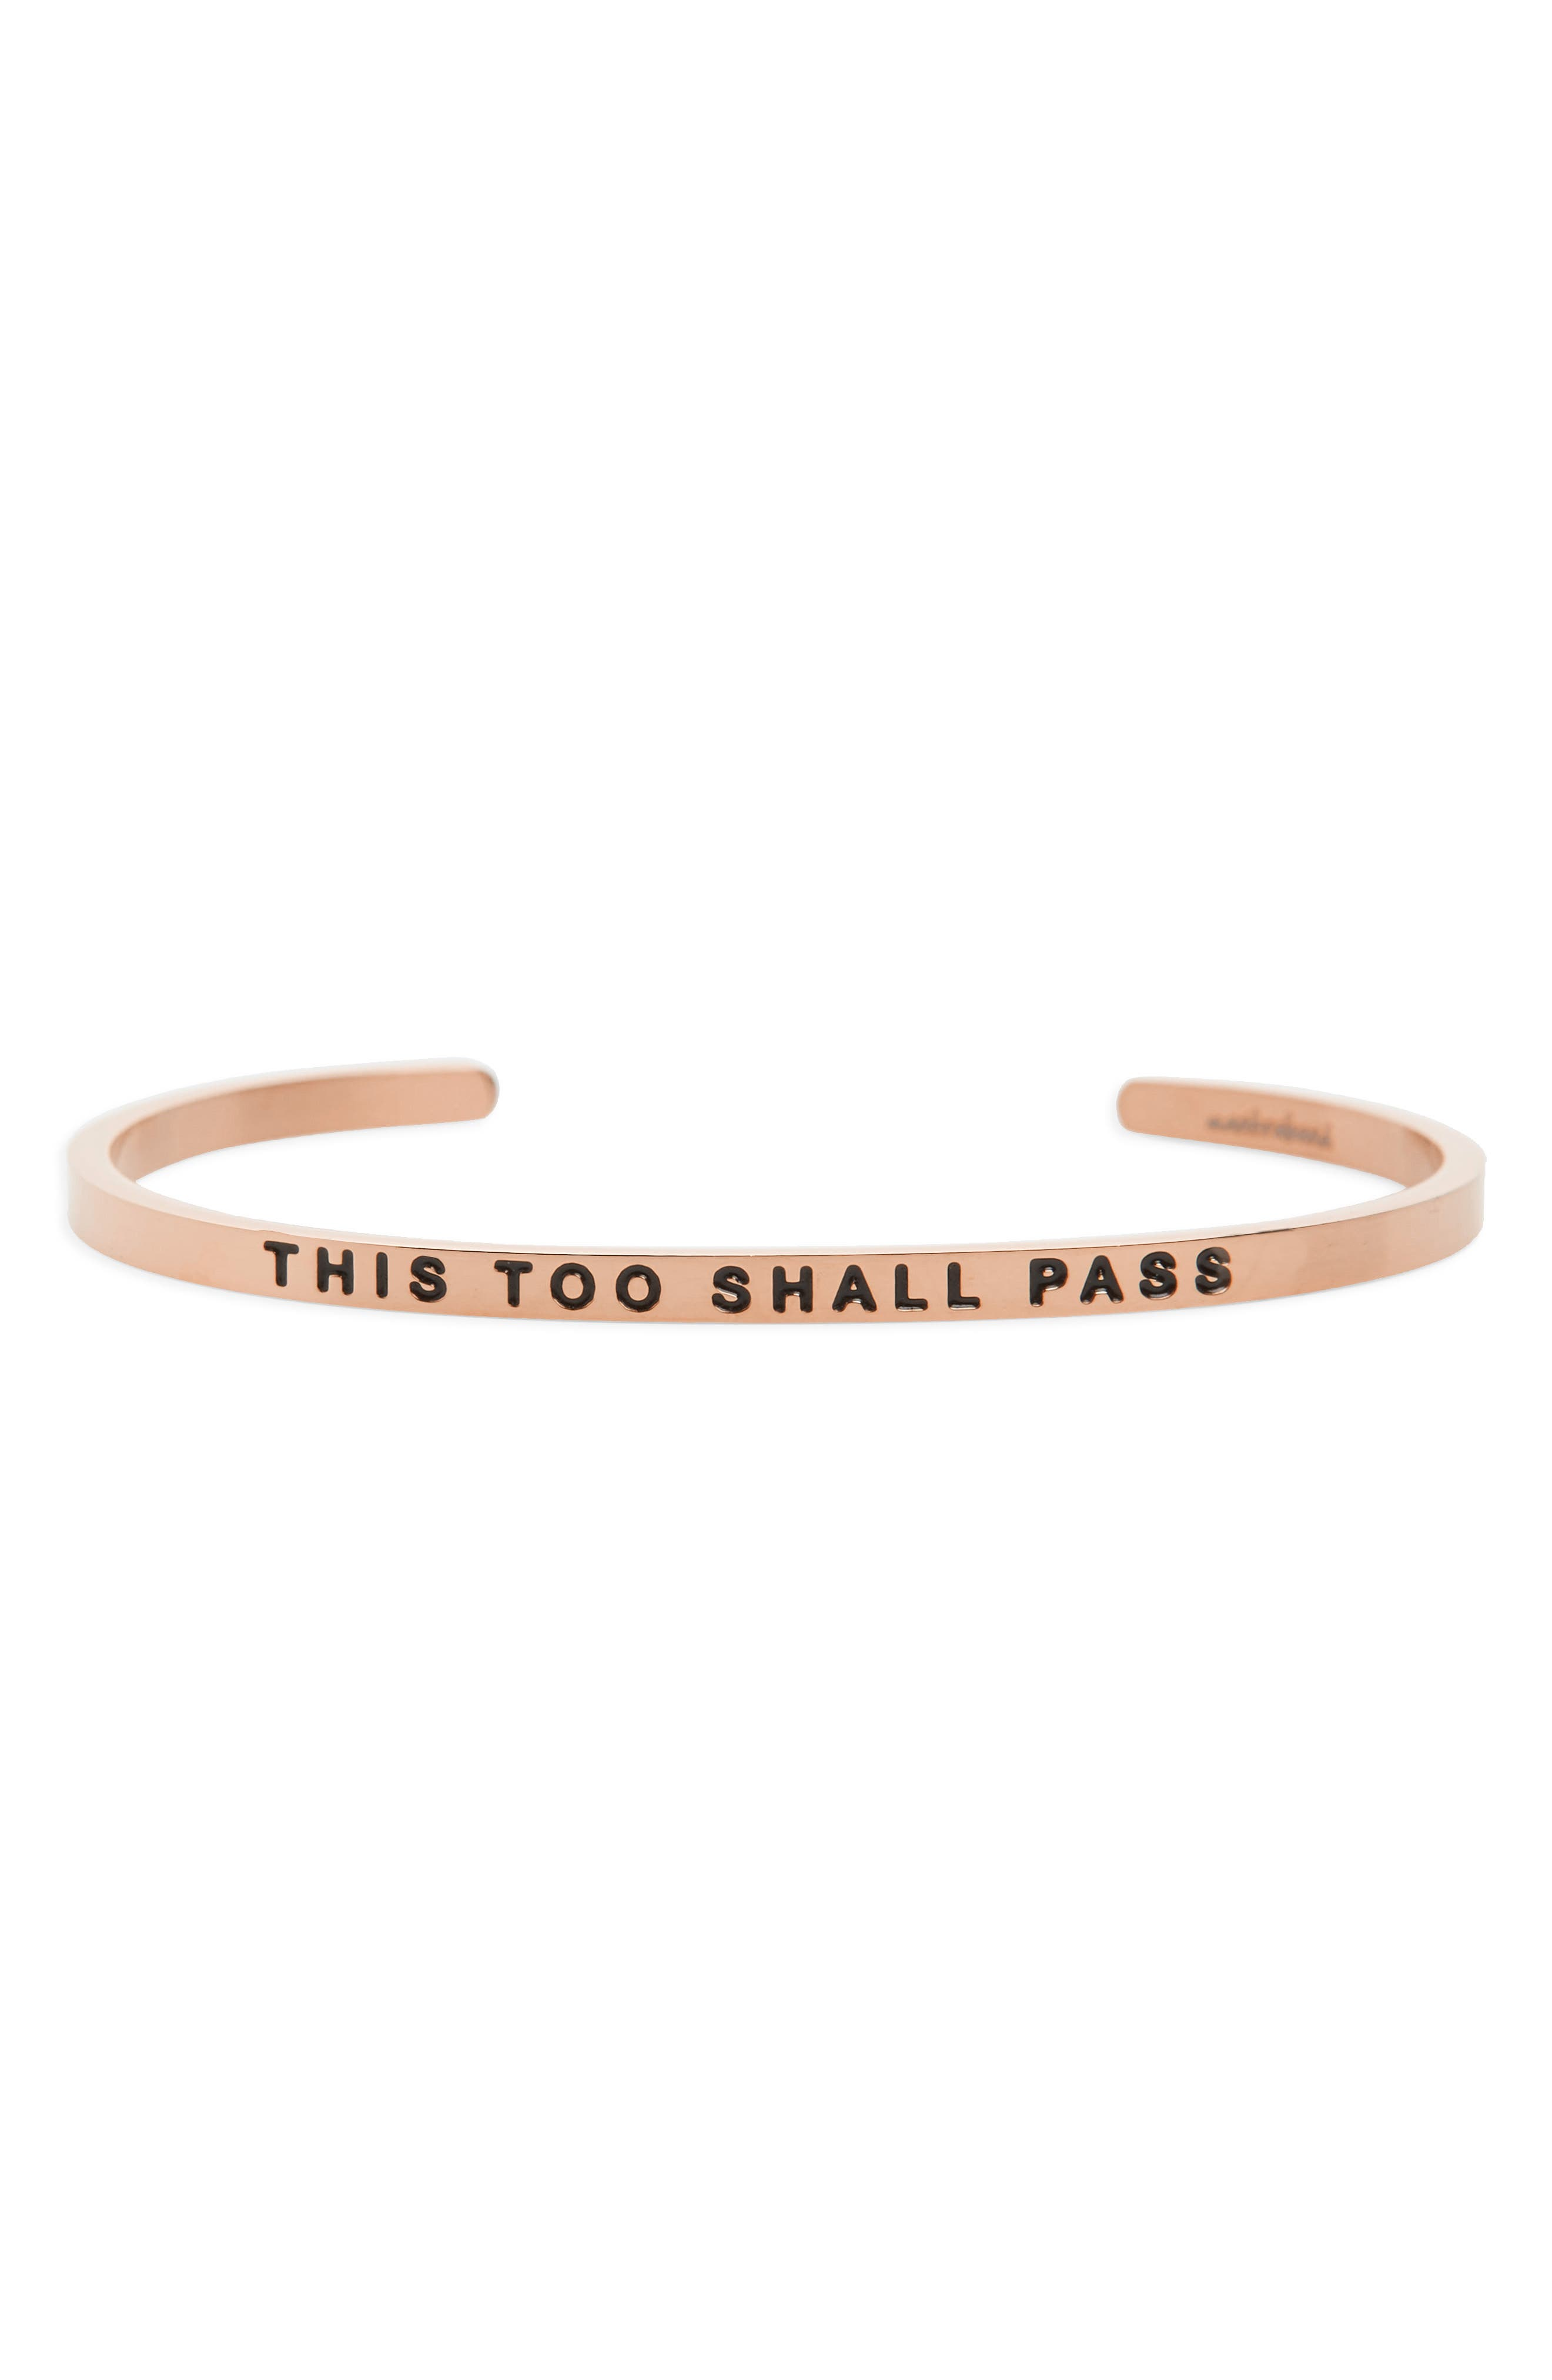 Alternate Image 1 Selected - MantraBand This Too Shall Pass Wrist Cuff